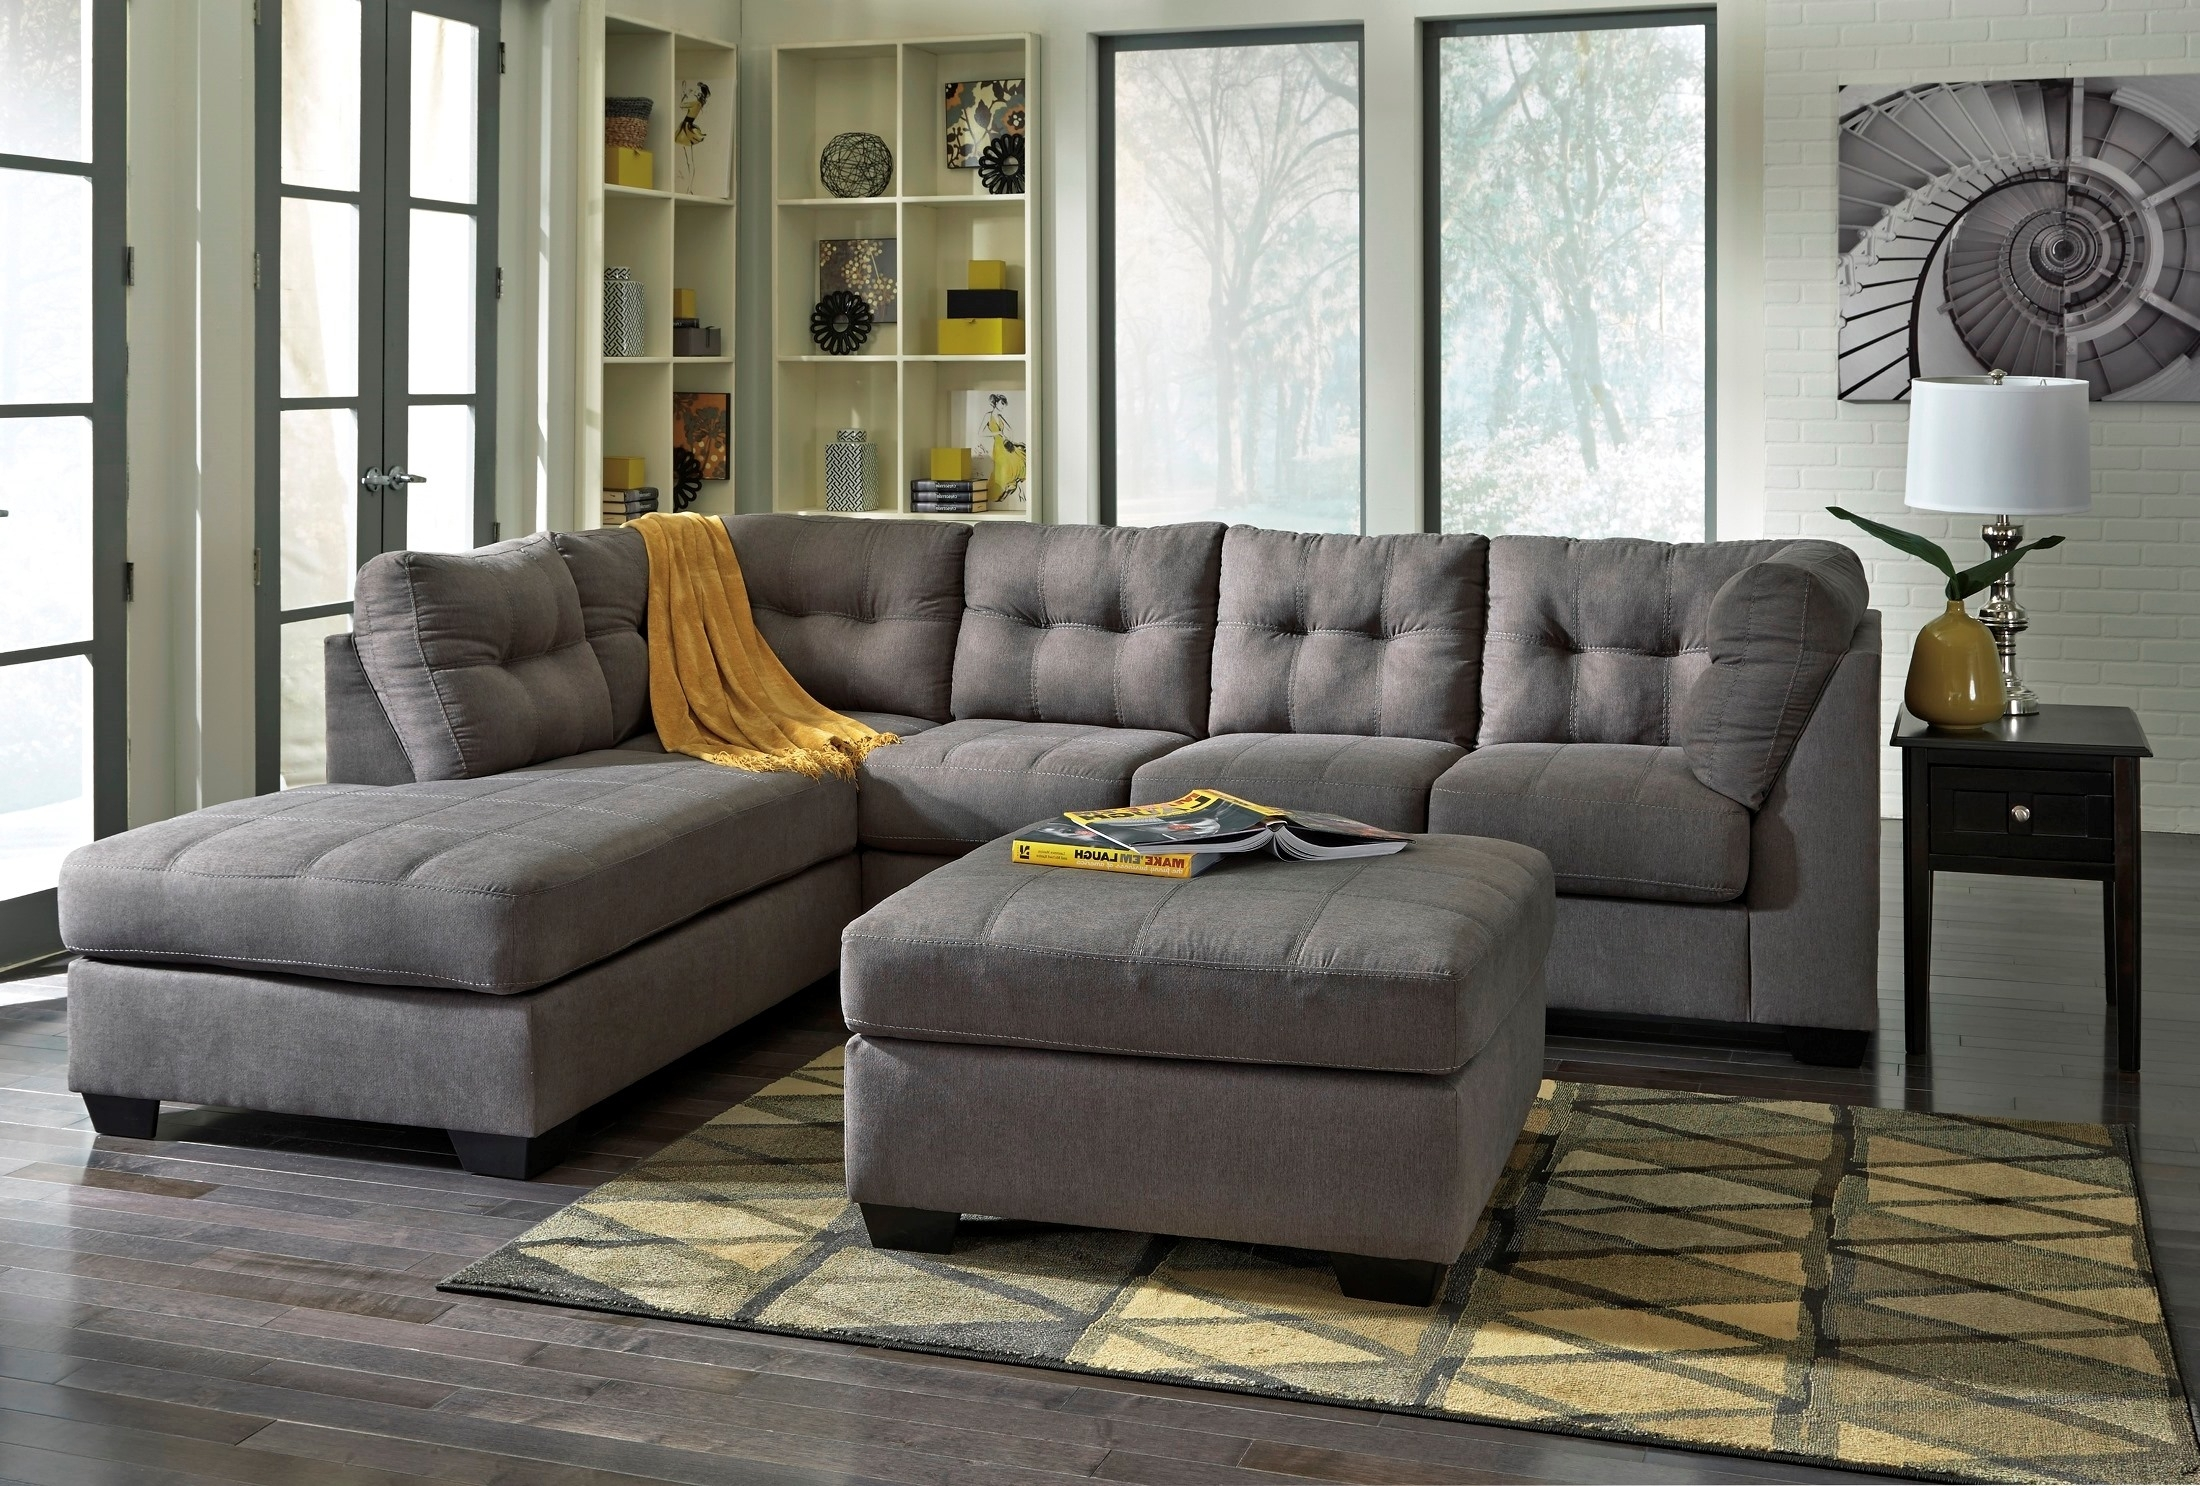 Signature Designashley Maier Charcoal Laf Sectional – Maier With Sierra Down 3 Piece Sectionals With Laf Chaise (View 7 of 25)